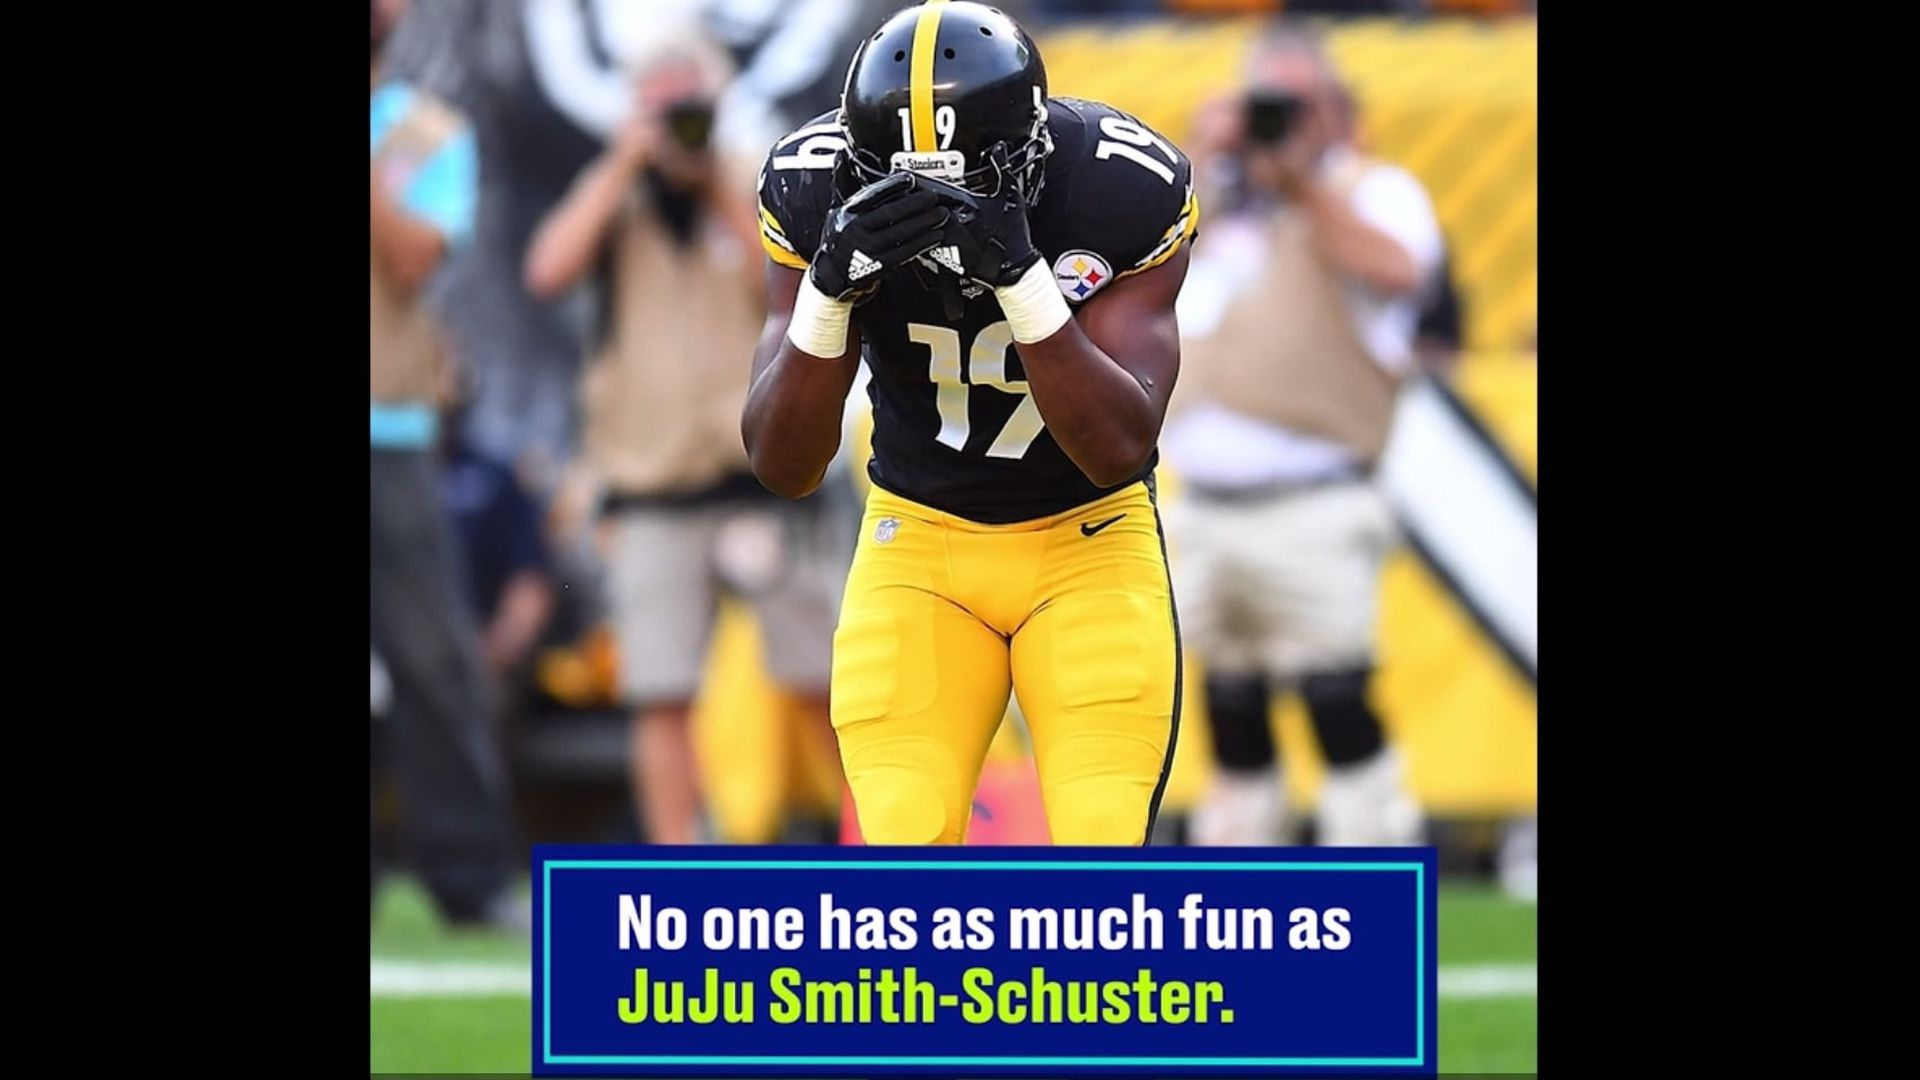 bf7fb00e462 JuJu Smith-Schuster s dog Boujee is the most adorable dog in the NFL -  SBNation.com